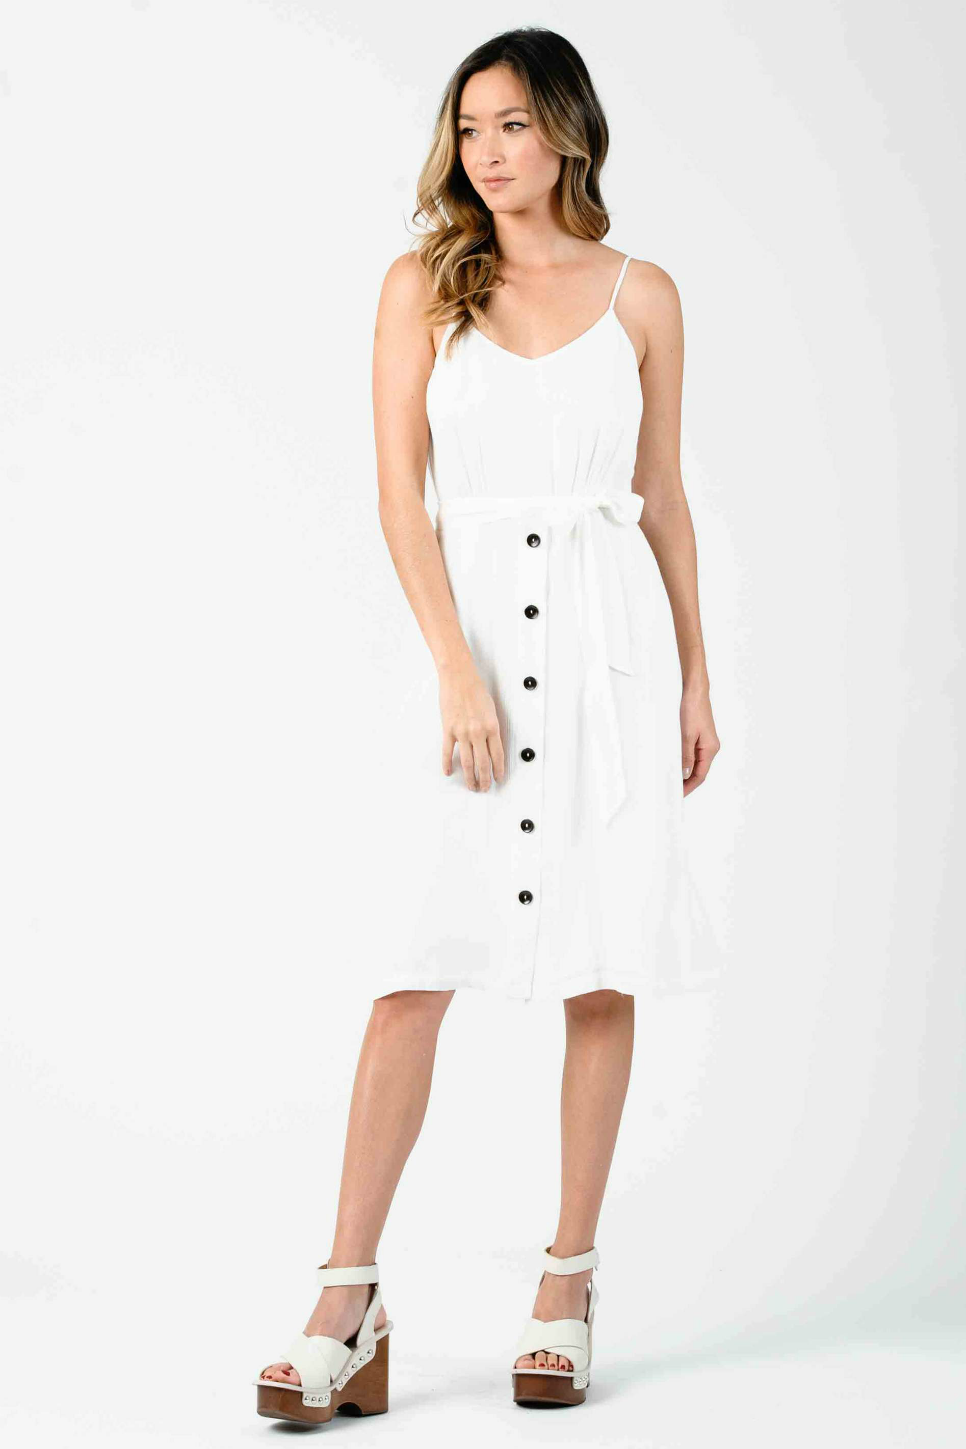 Lucca - Cleopatra Button Front Low Back Midi Dress - White - Front